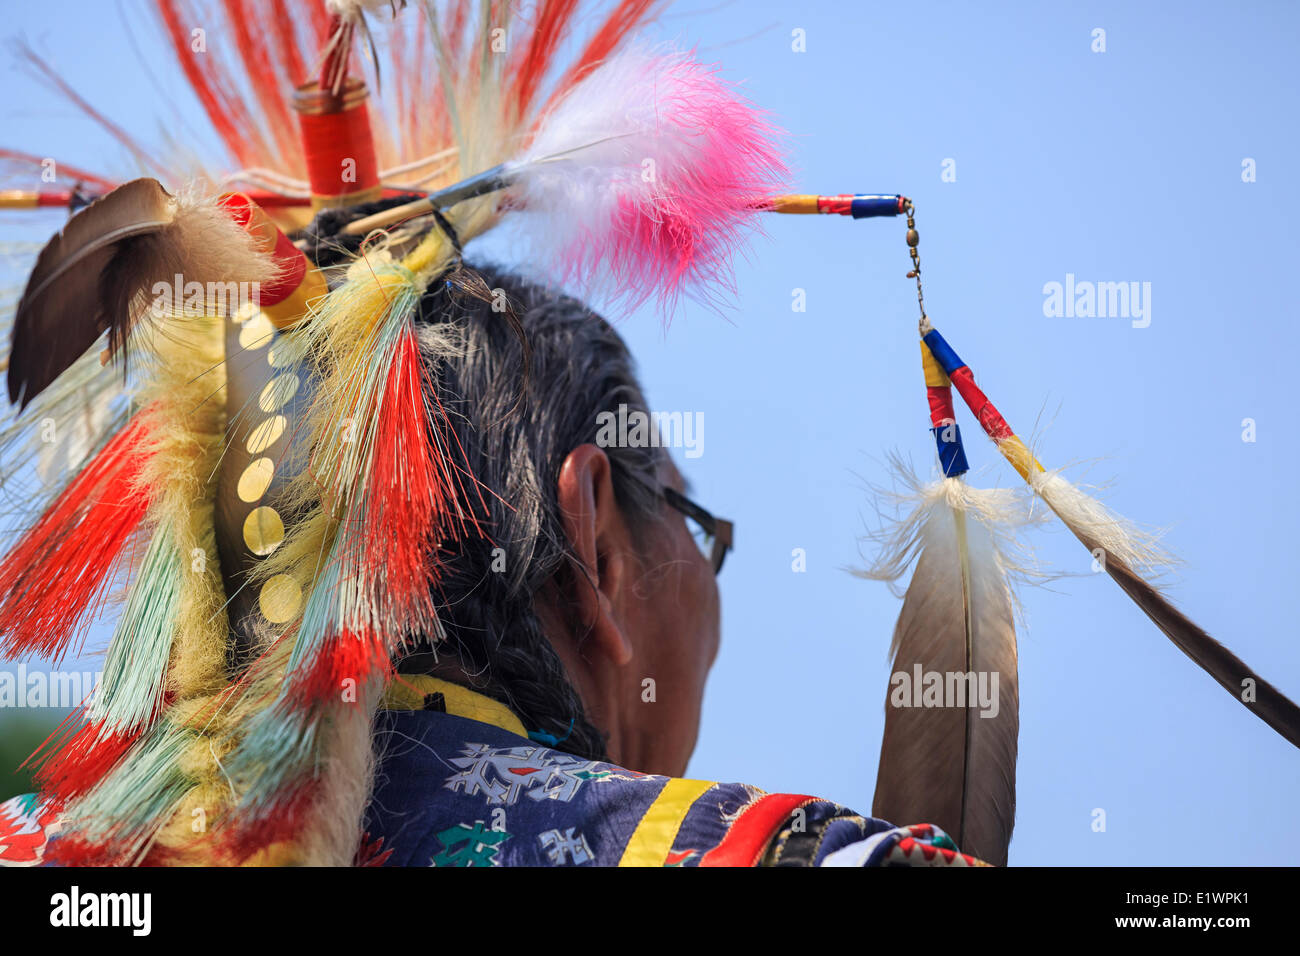 First Nations Elder in traditional headdress, Winnipeg, Manitoba, Canada Stock Photo